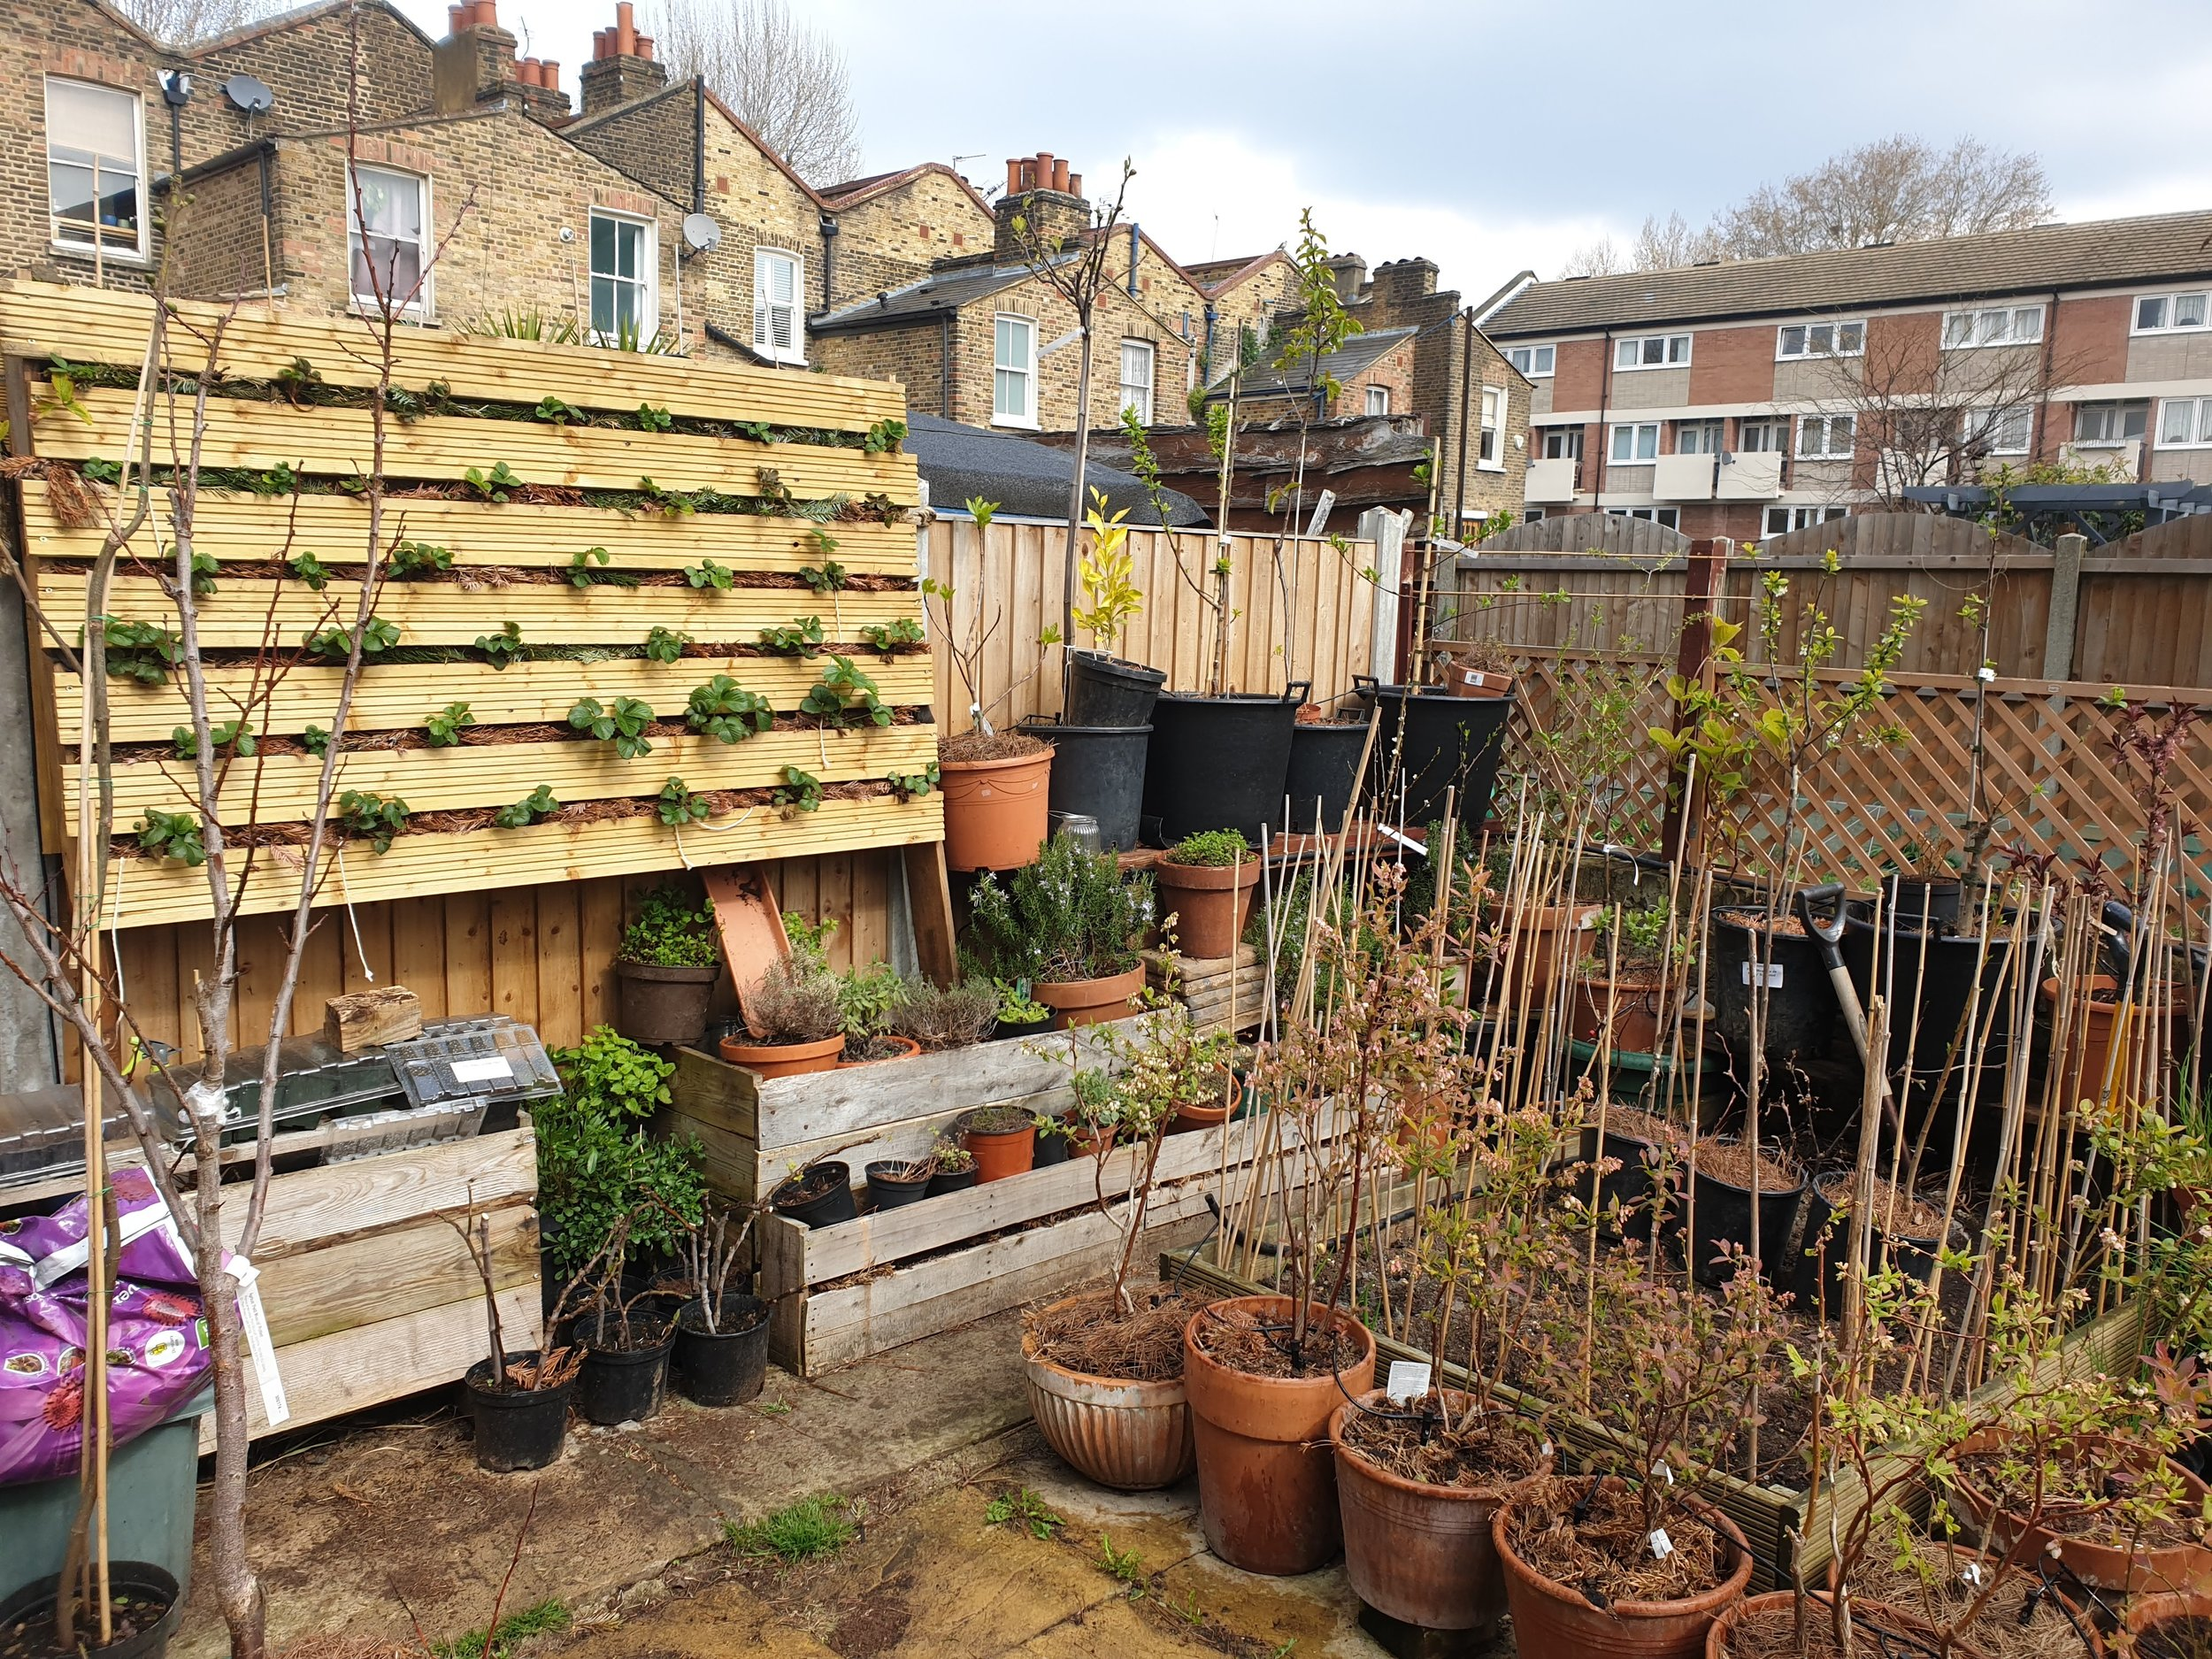 The newly made vertical plant hanger on the left of the image. The older one placed on the floor as a herb container